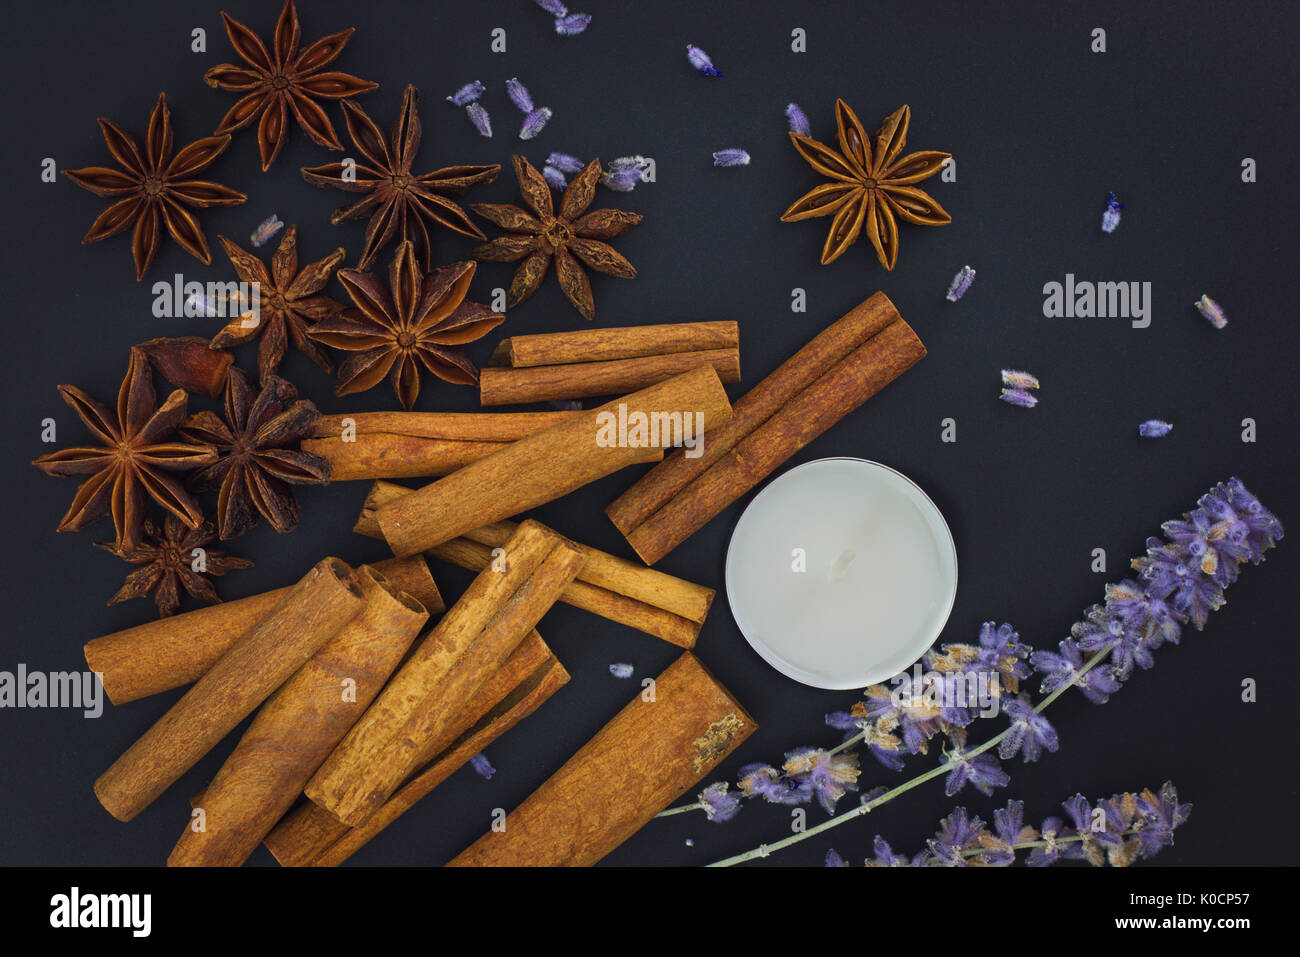 Sense of Spices cinnamon and star anise whit candle on black background with copy space - Stock Image